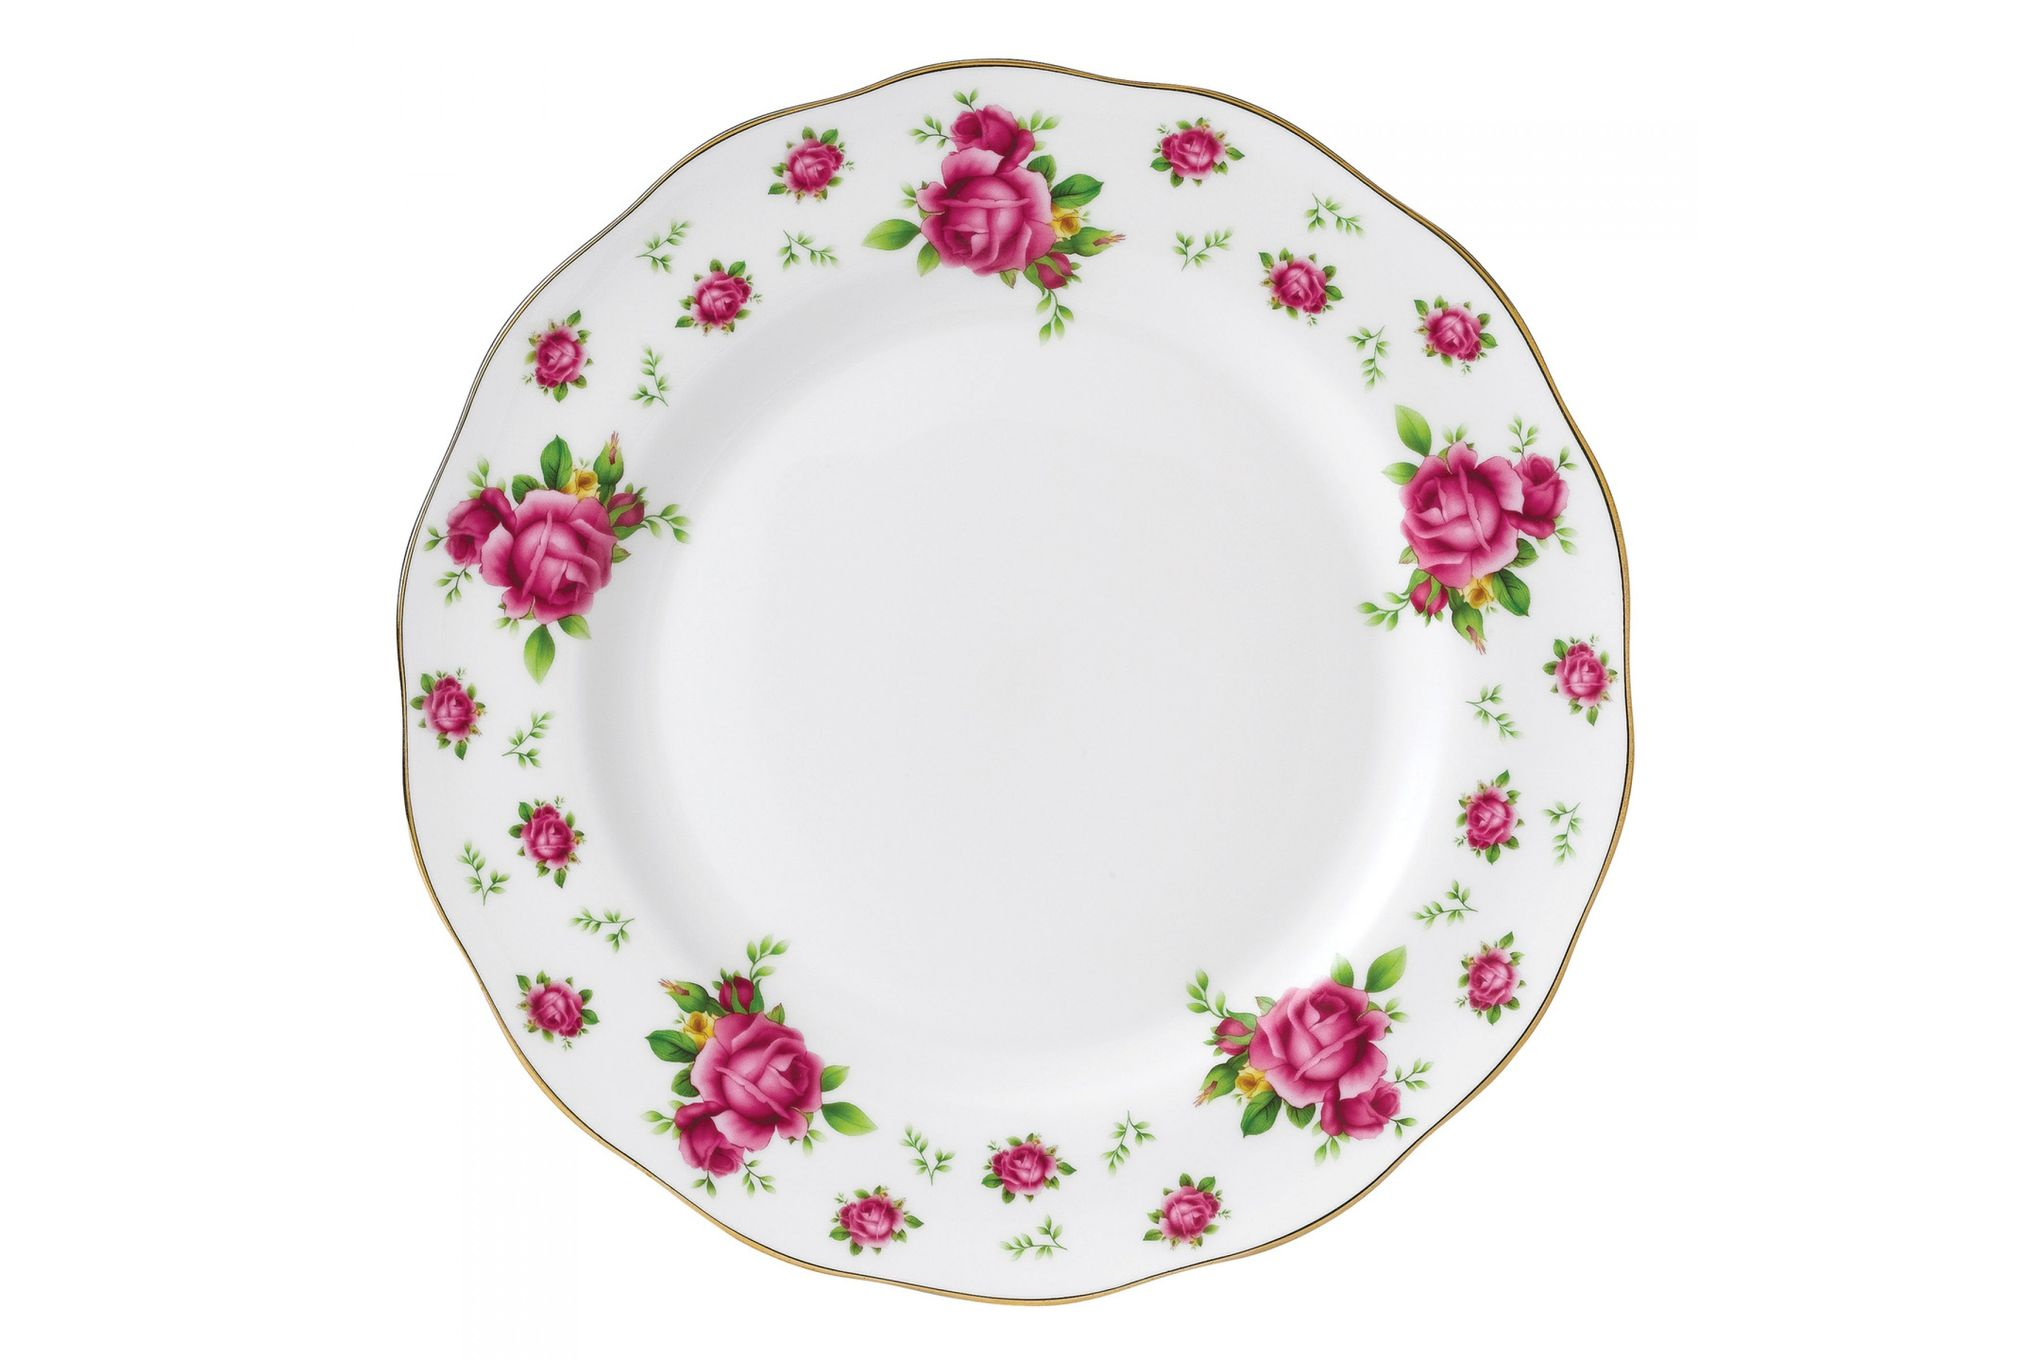 Royal Albert New Country Roses White Dinner Plate 27cm thumb 1